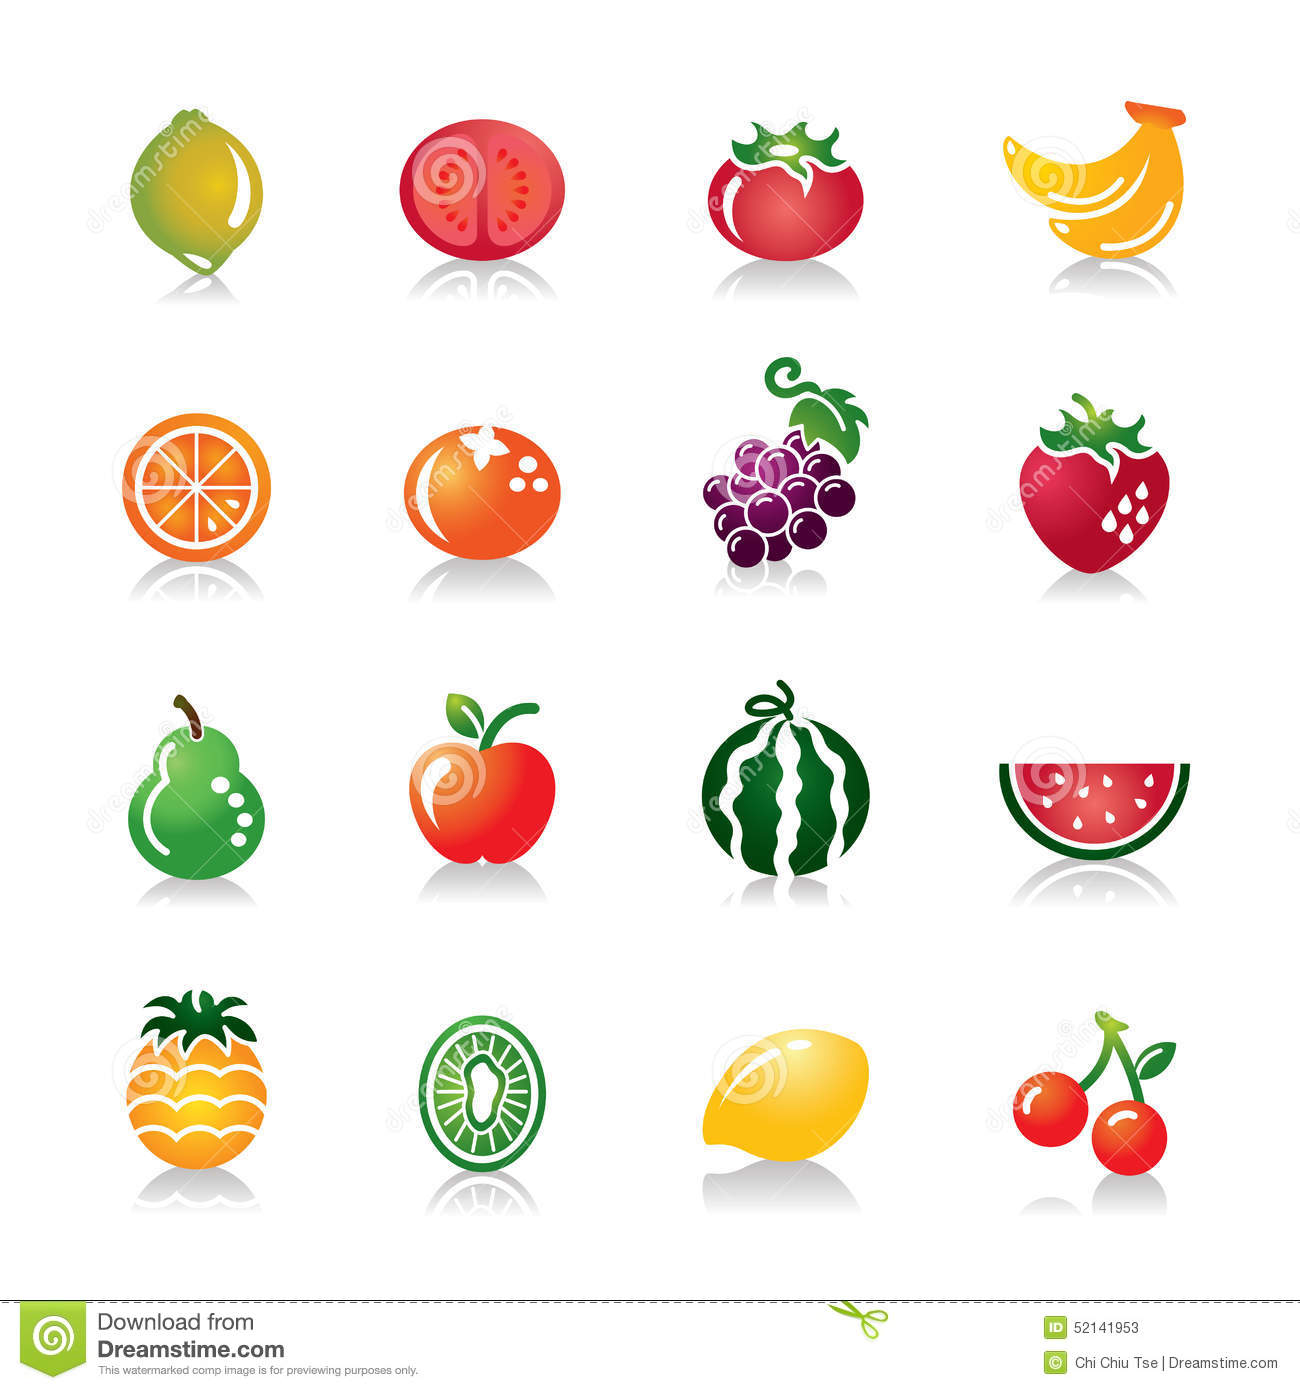 Stock Illustration Fruits Colorful Icons Collection Different Kinds Fruit Contains Hi Res Jpg Pdf Illustrator Files Image52141953 on Banana Clip Art